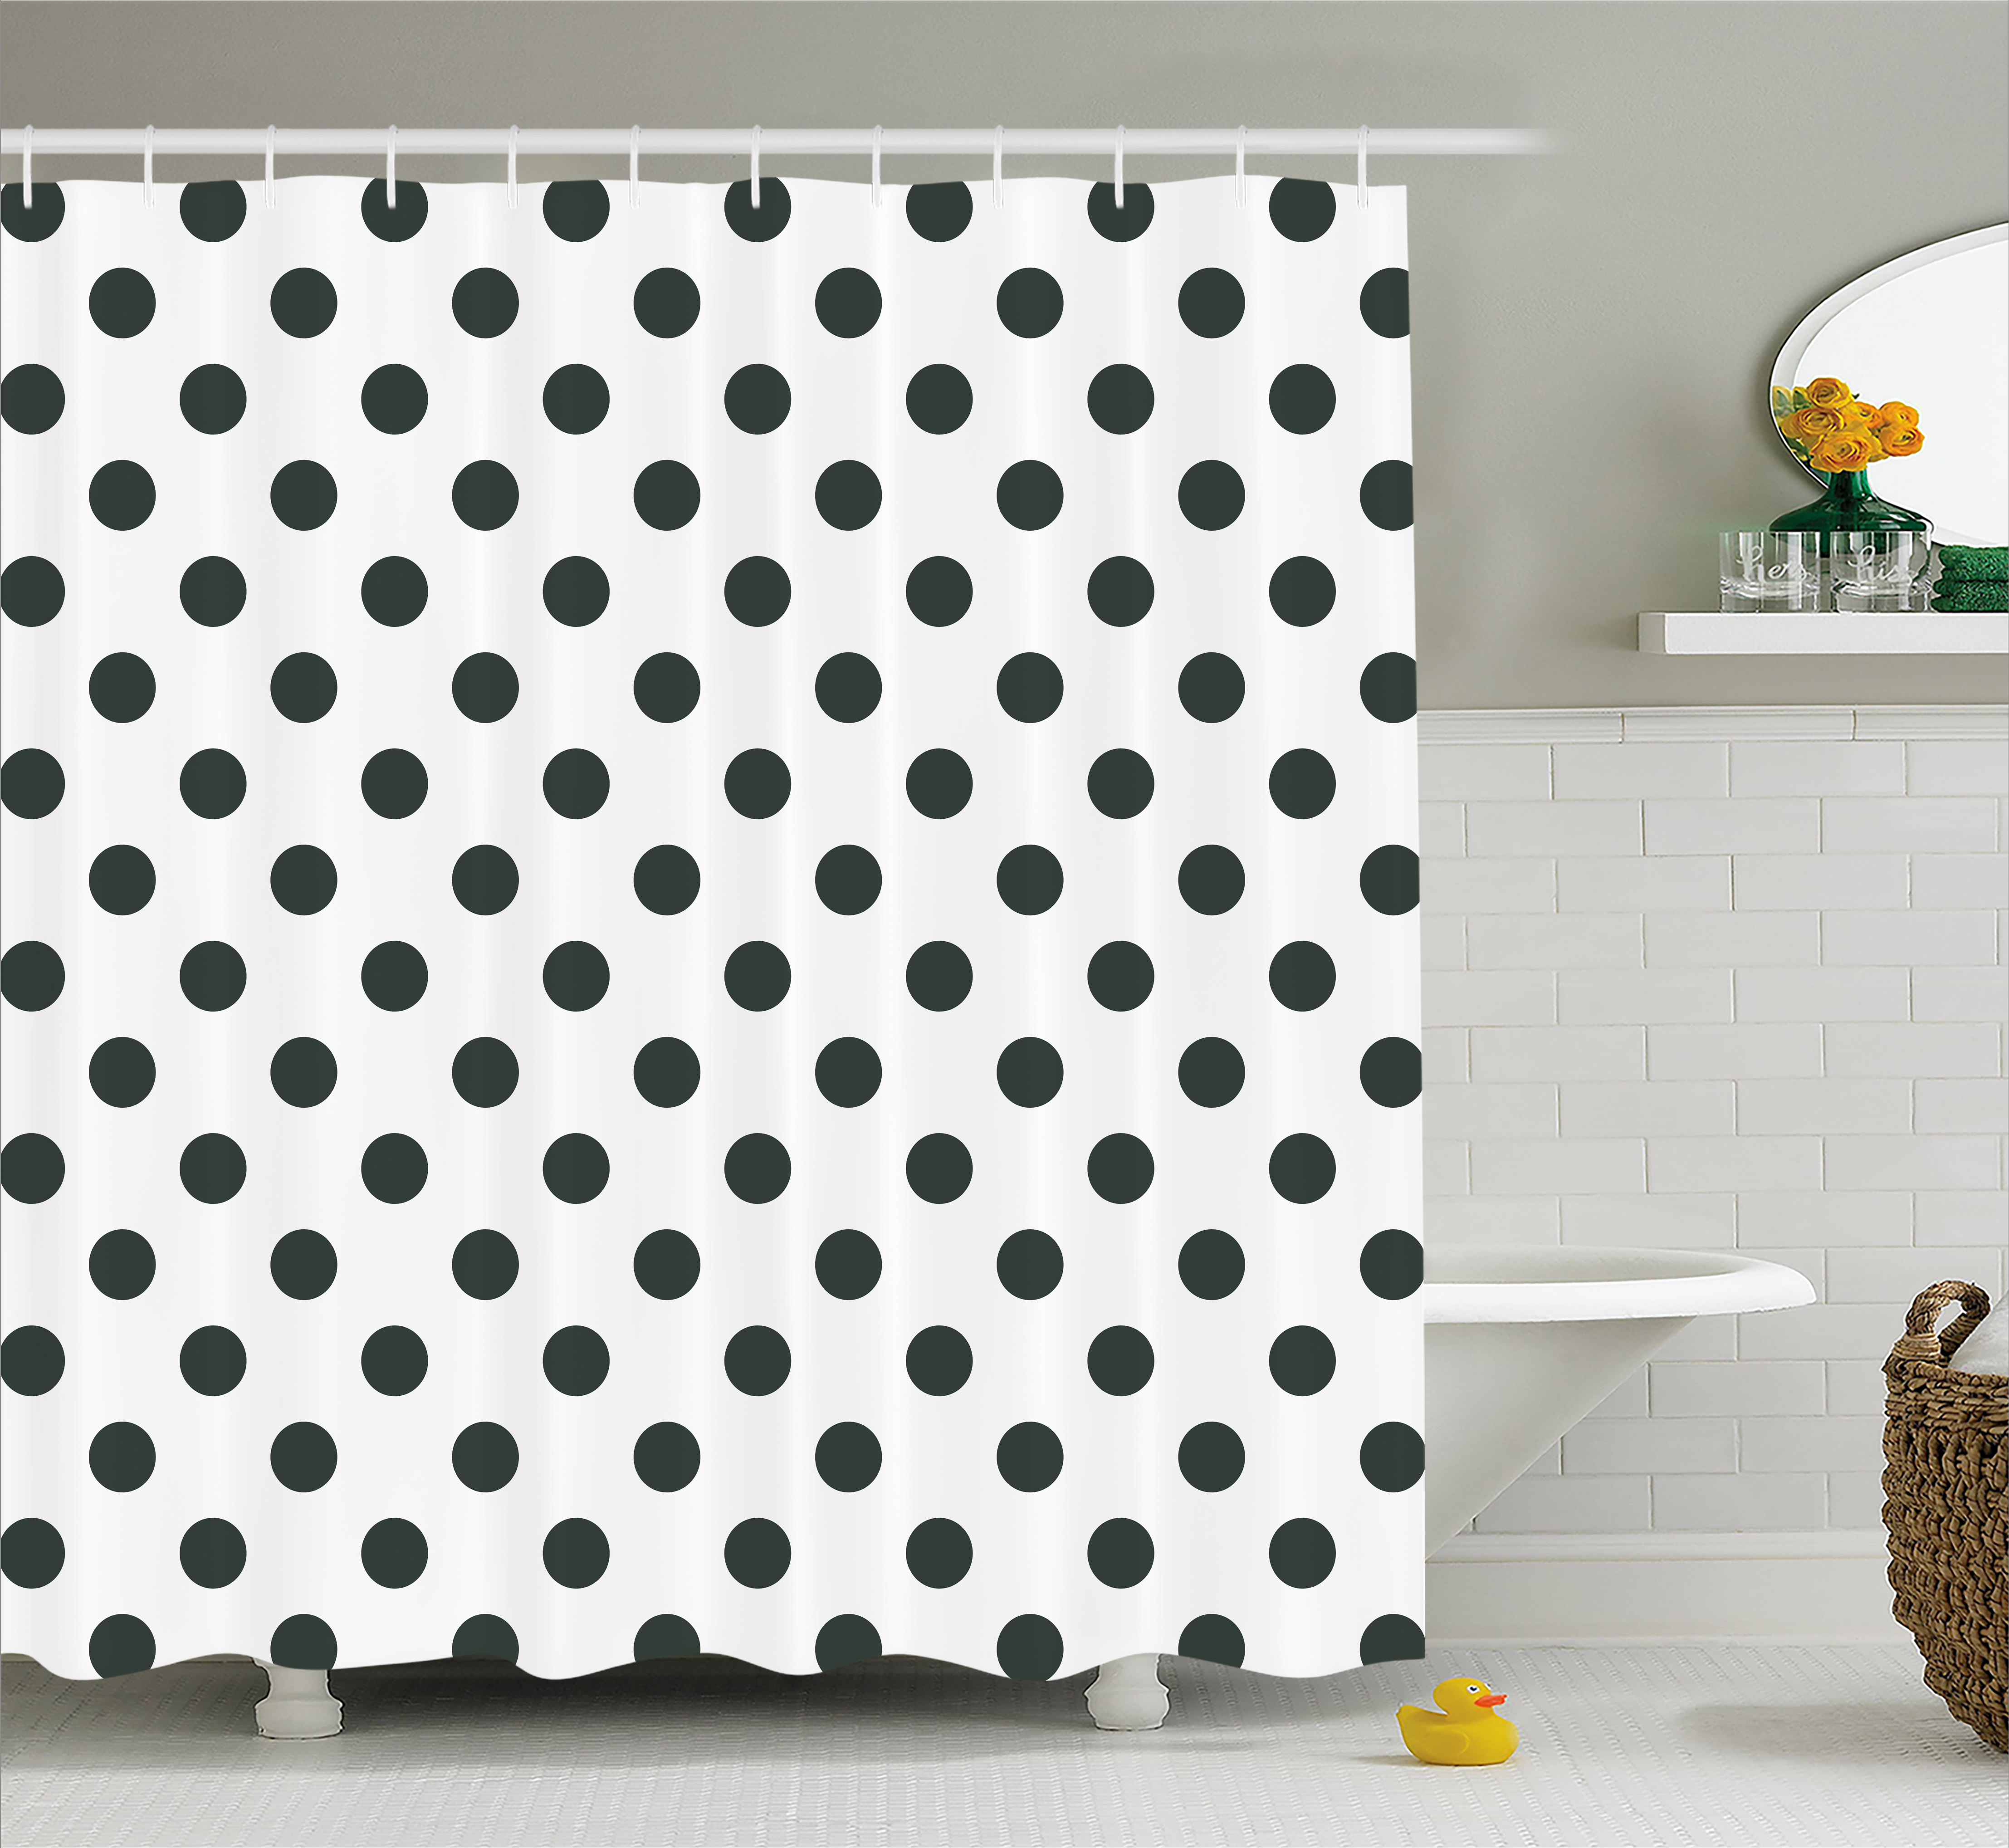 retro shower curtain. Retro Shower Curtain, Nostalgic Polka Dots Pattern With Large Round Circles Minimalist Modern Art Print Curtain